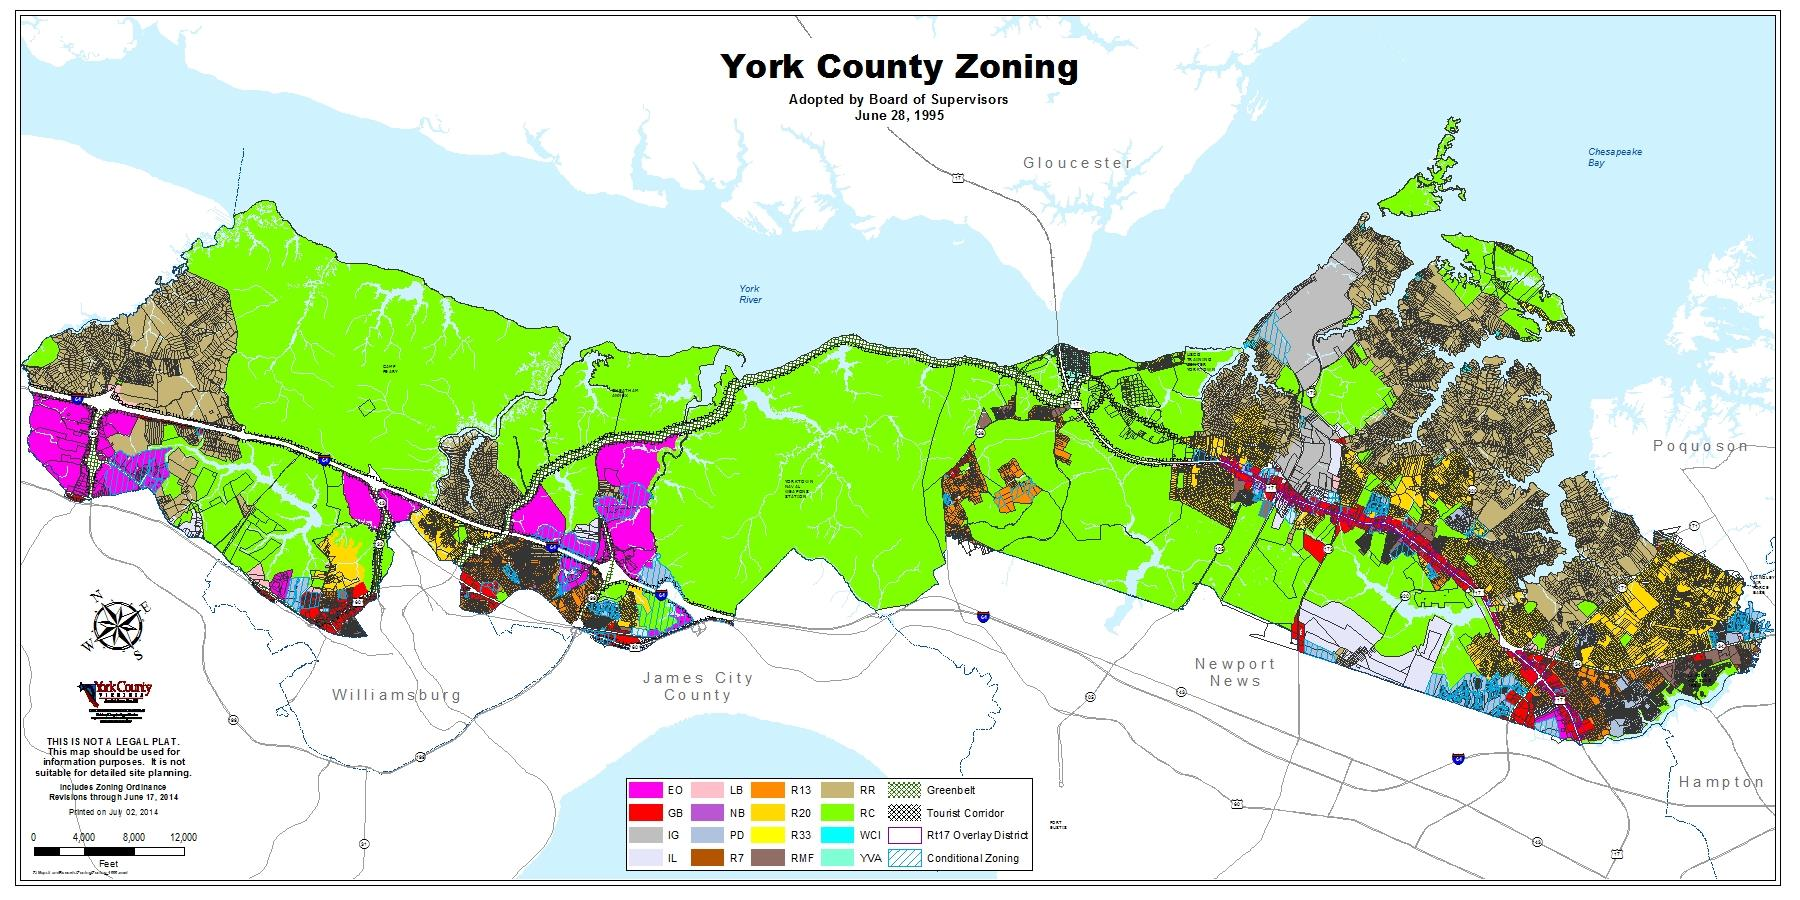 Land Use & Zoning Maps | York County, VA Yorktown Virginia State Map on west virginia state map, fredericksburg virginia state map, quantico virginia state map, manassas virginia state map, maryland virginia state map, northern virginia virginia state map, richmond virginia state map, james river virginia state map,